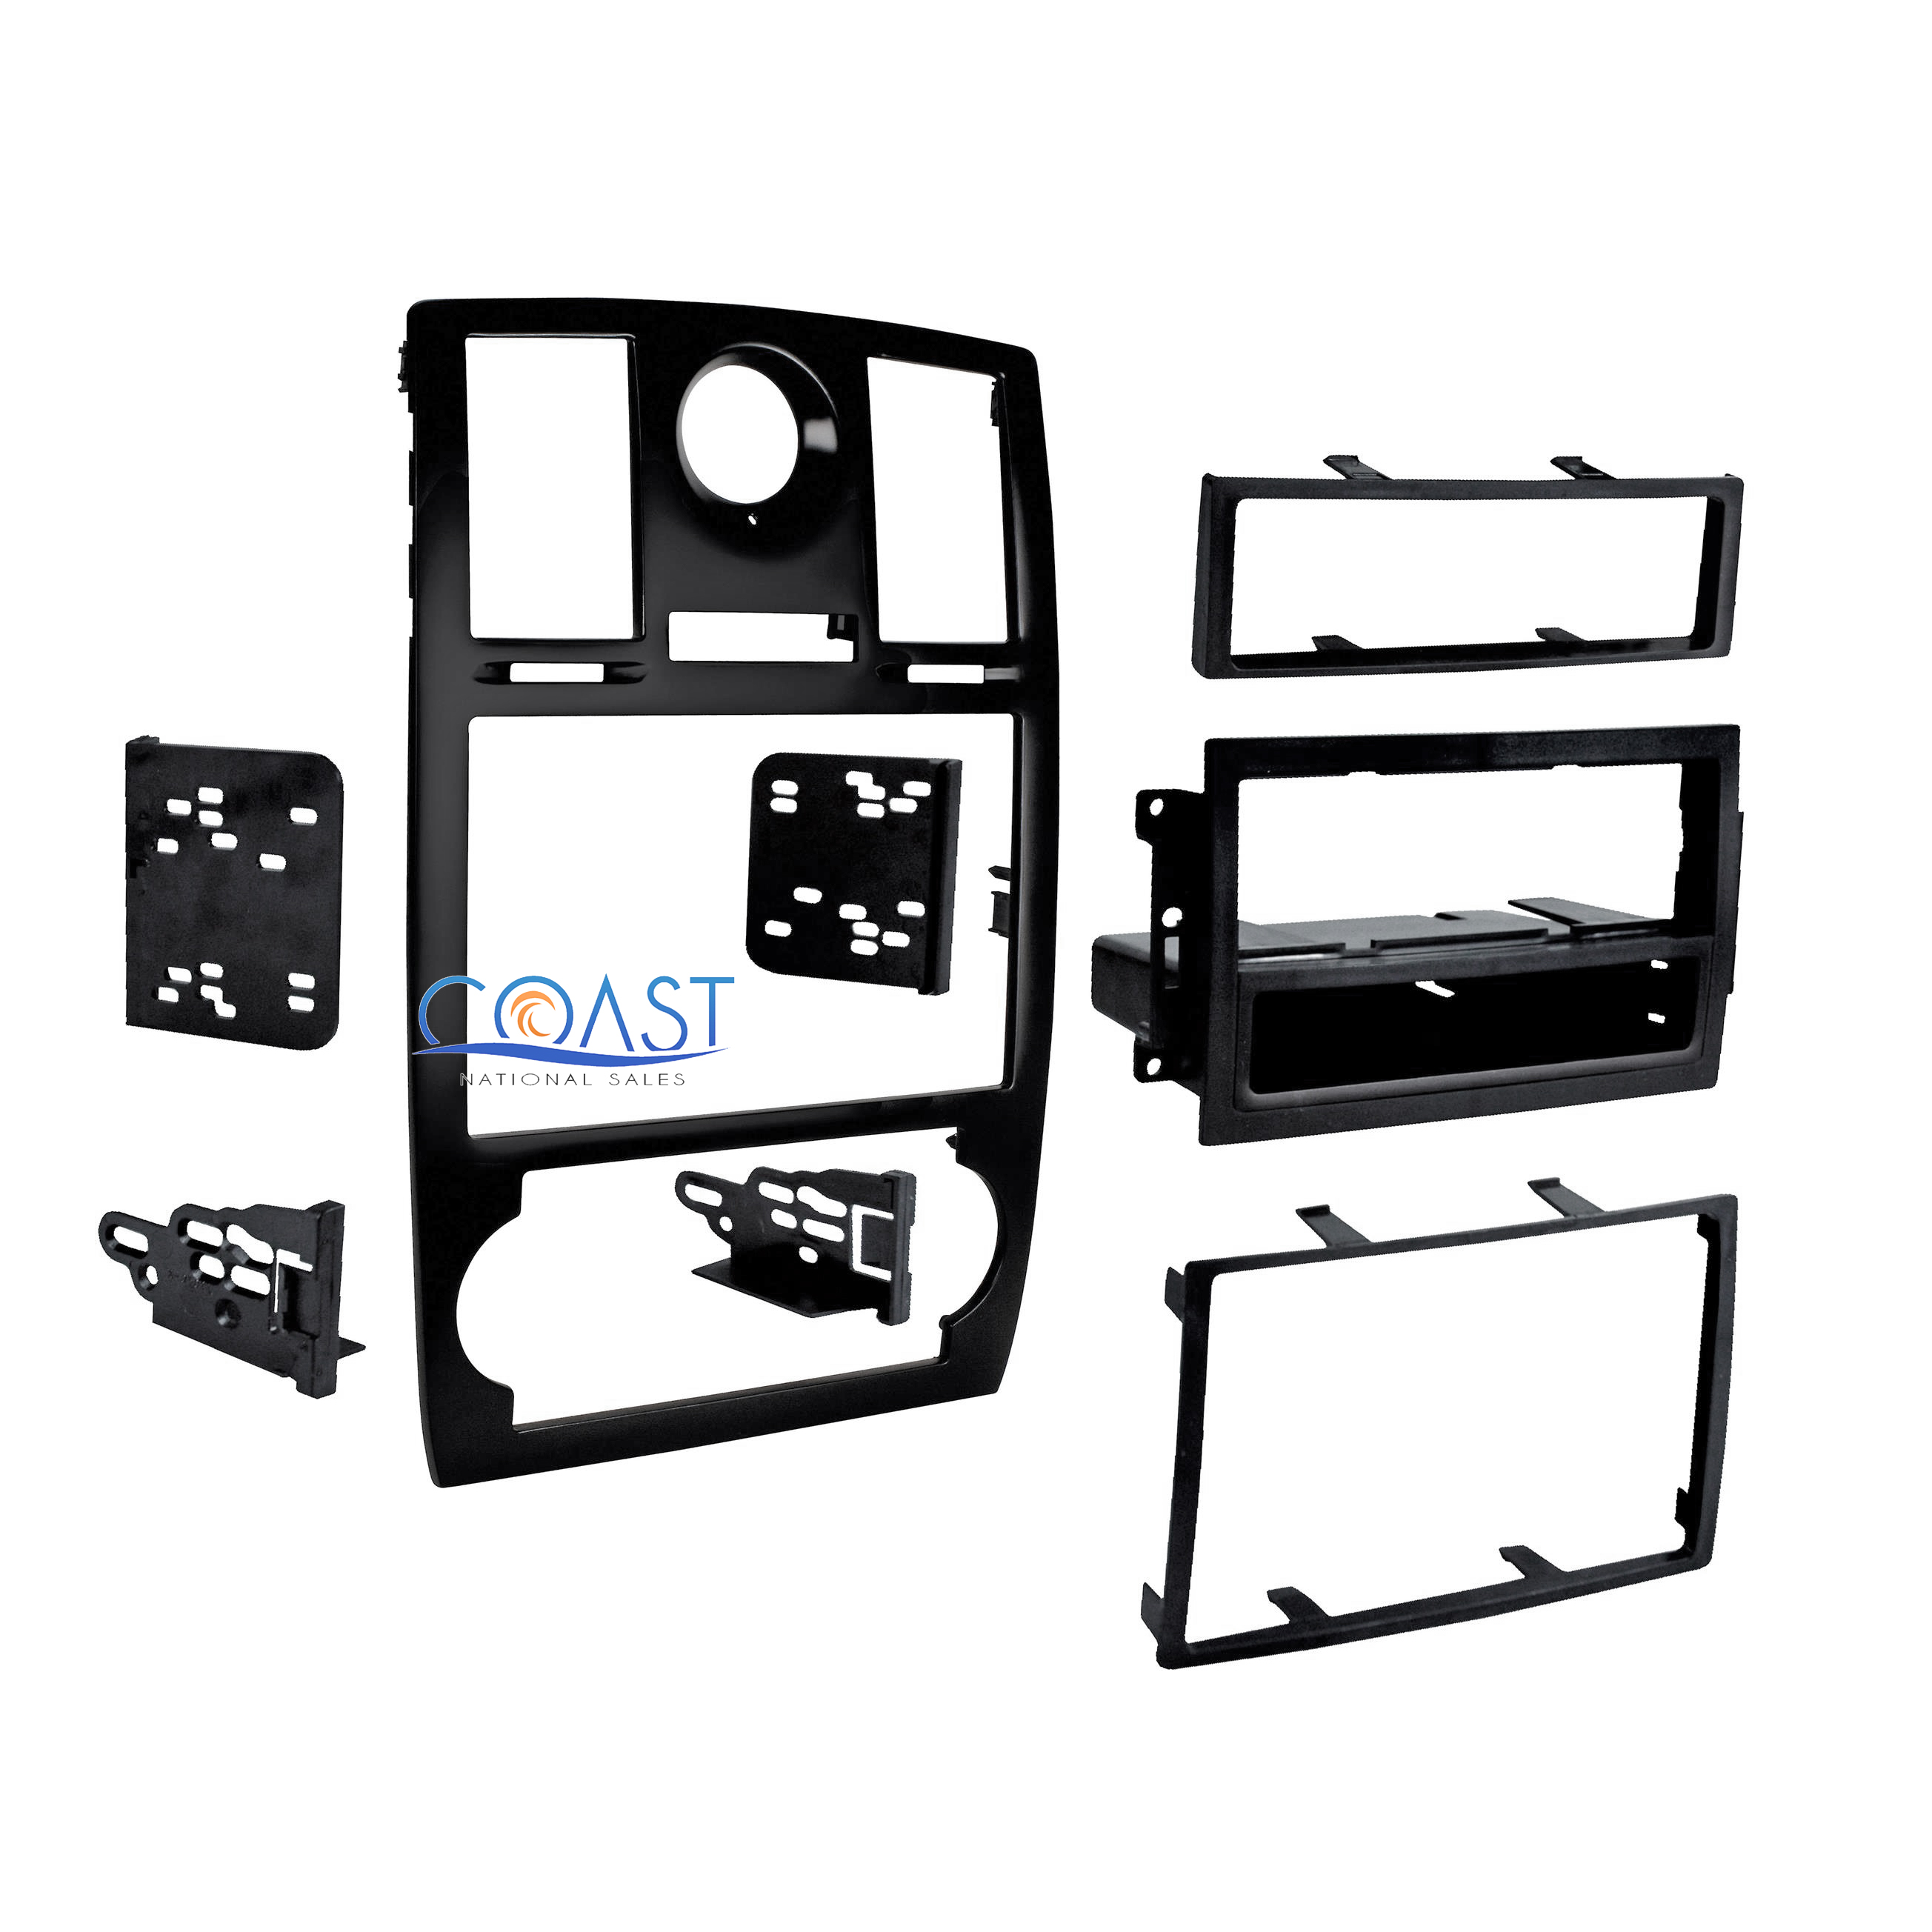 Manual 2006 Chrysler 300 Roof Removal: Car Radio Stereo Double Din Installation Dash Kit For 2005